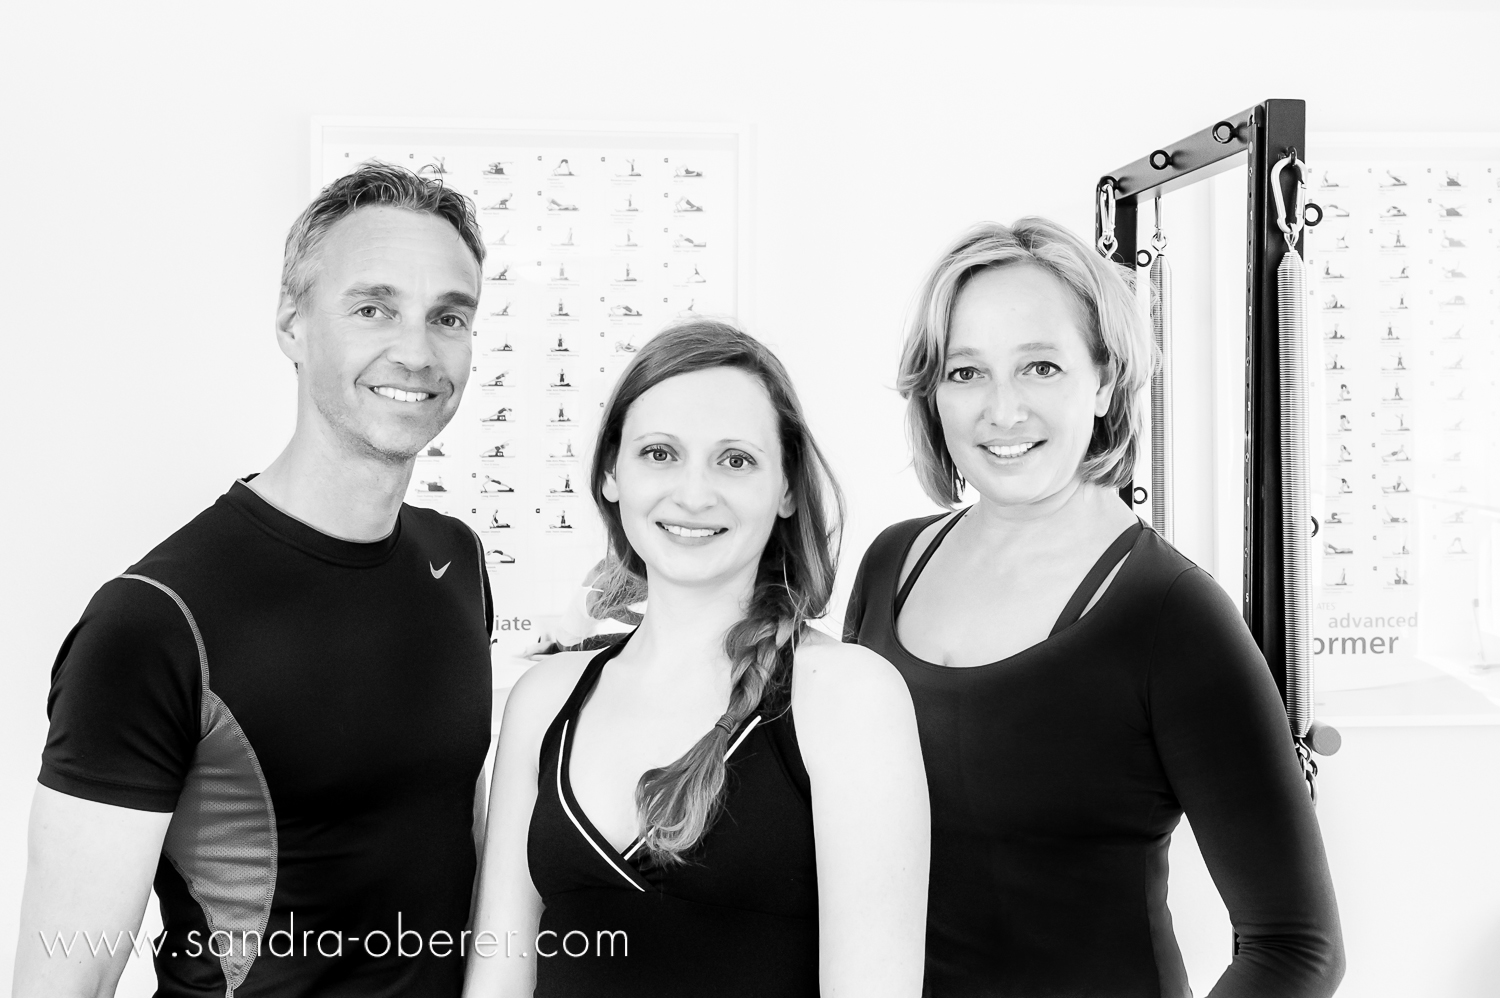 Ard van Duuren, dipl. Sportphysiotherapeut und Reha Pilates Instructor Sue van Dooren, Body Harmonics Pilates Instructor Lisette van Duuren, full certificated STOTT Pilates Instructor